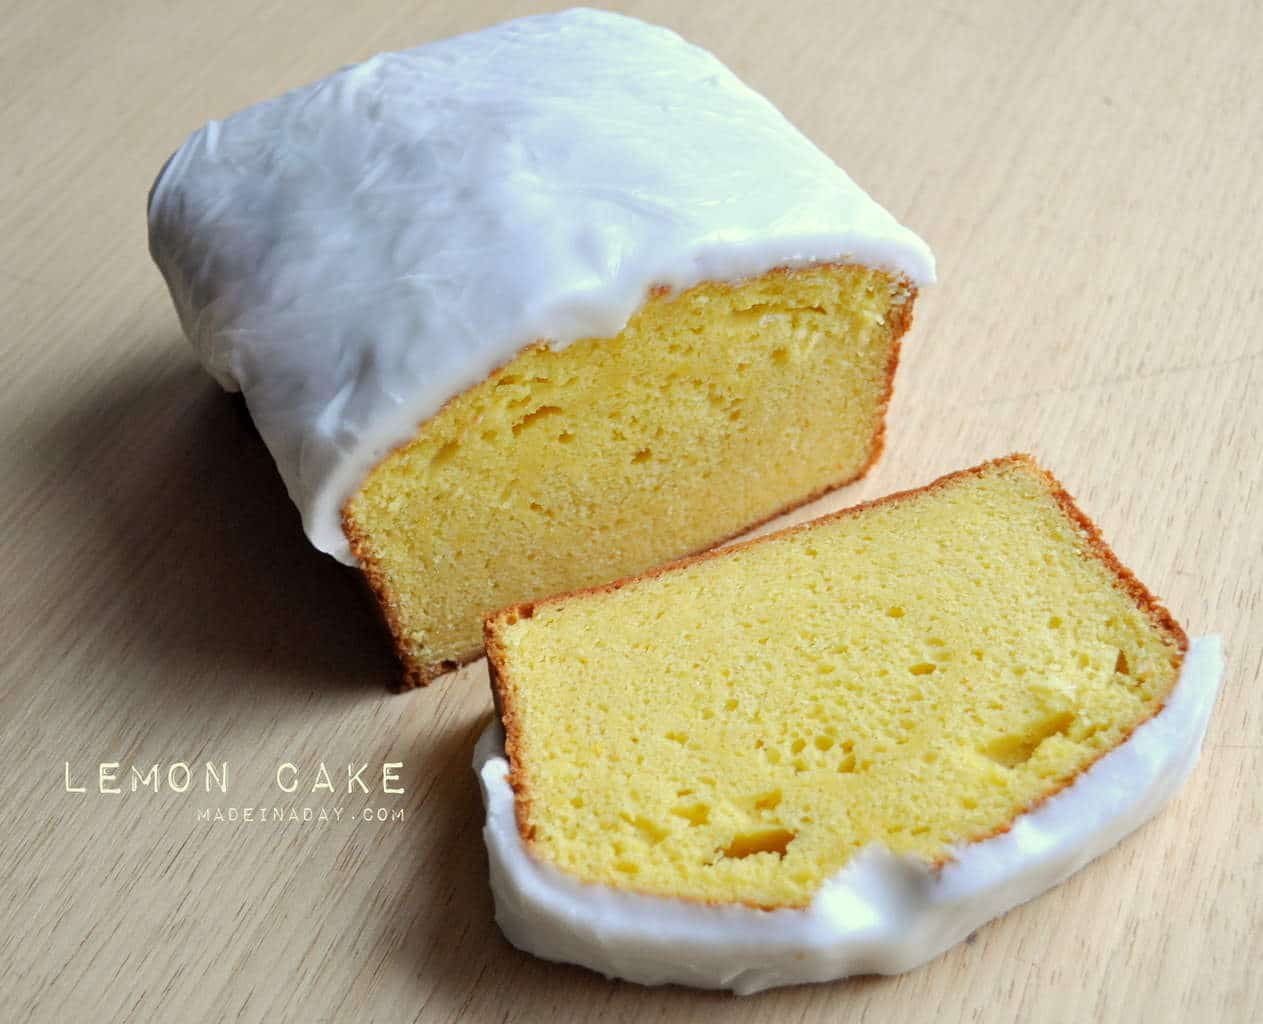 Lemon Cake Loaf Recipe madeinaday.com